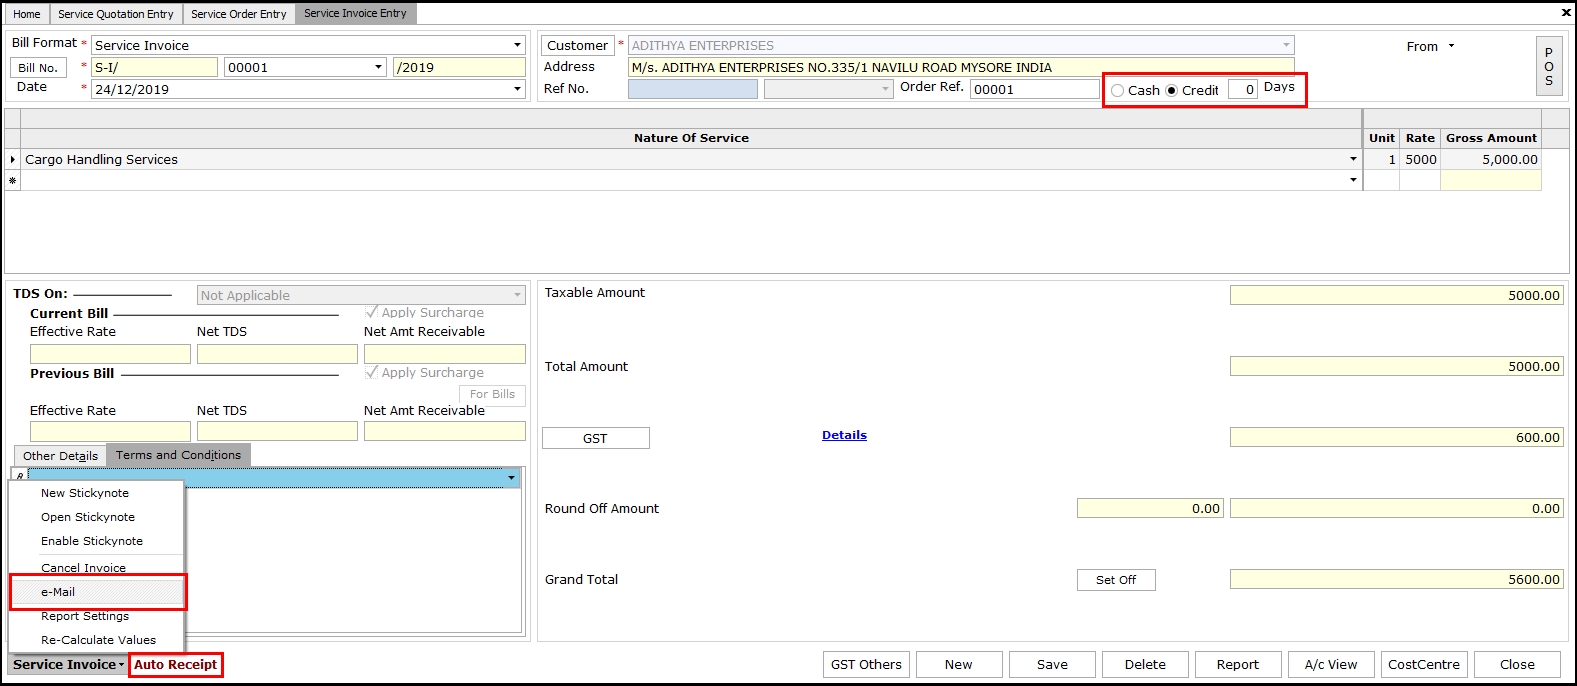 7.Service Invoicing in Saral-Email